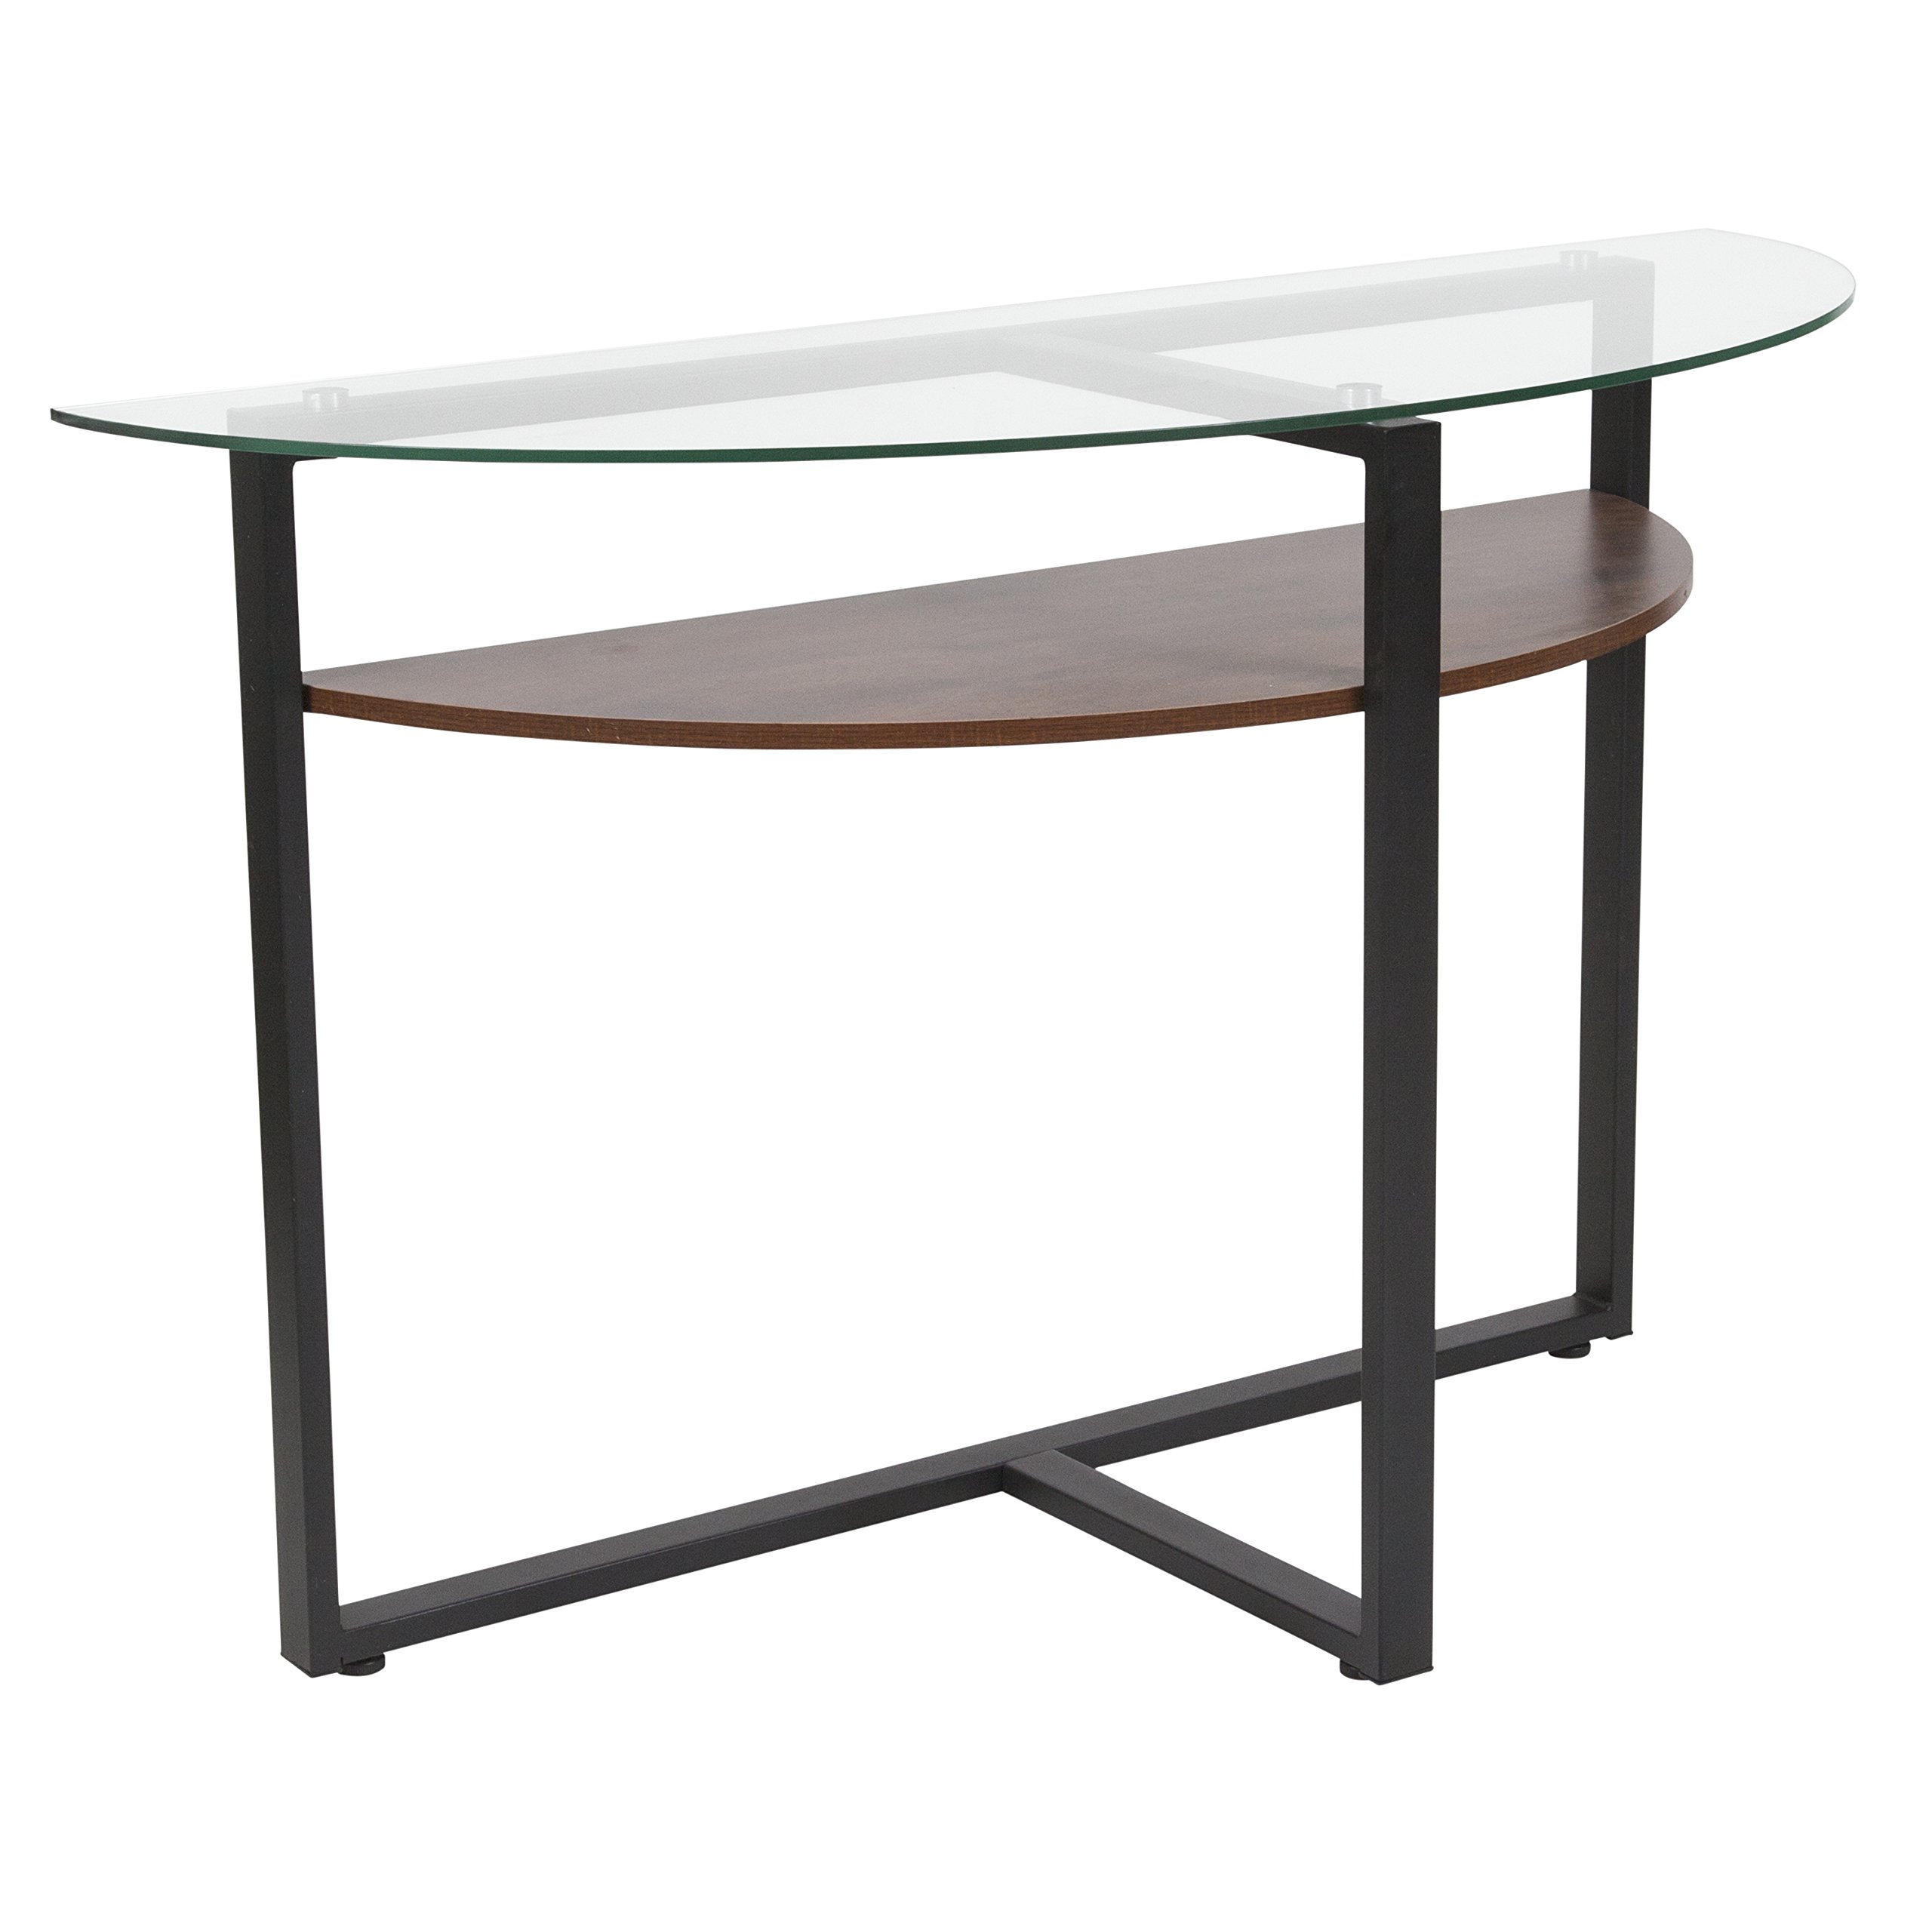 Flash Furniture Princeton Collection Glass Console Table with Rustic Oak Wood Finish and Black Metal Legs